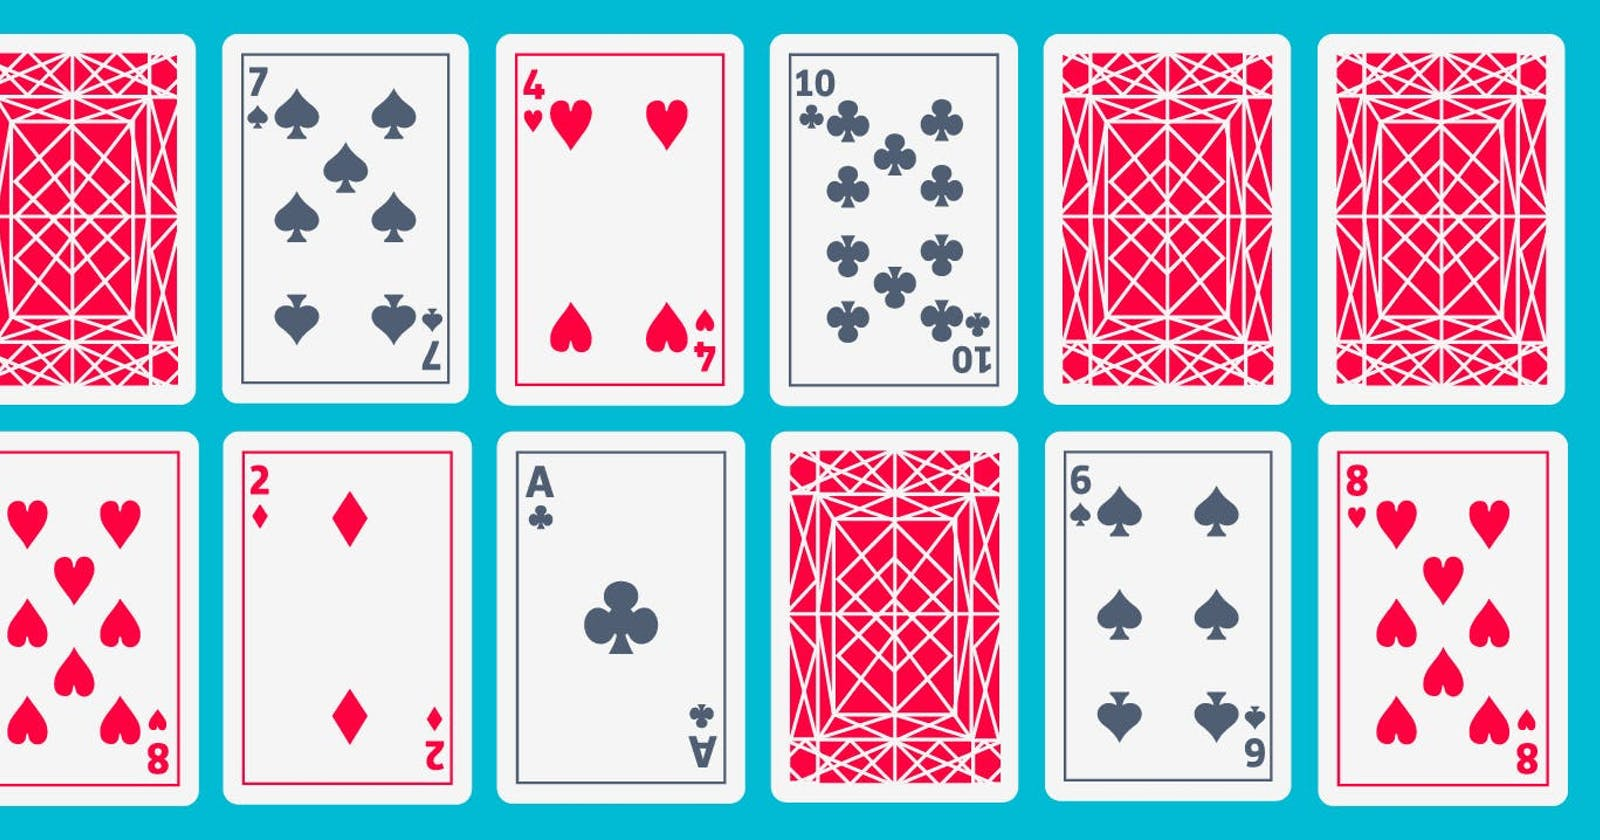 Create Random Cards With Pure CSS